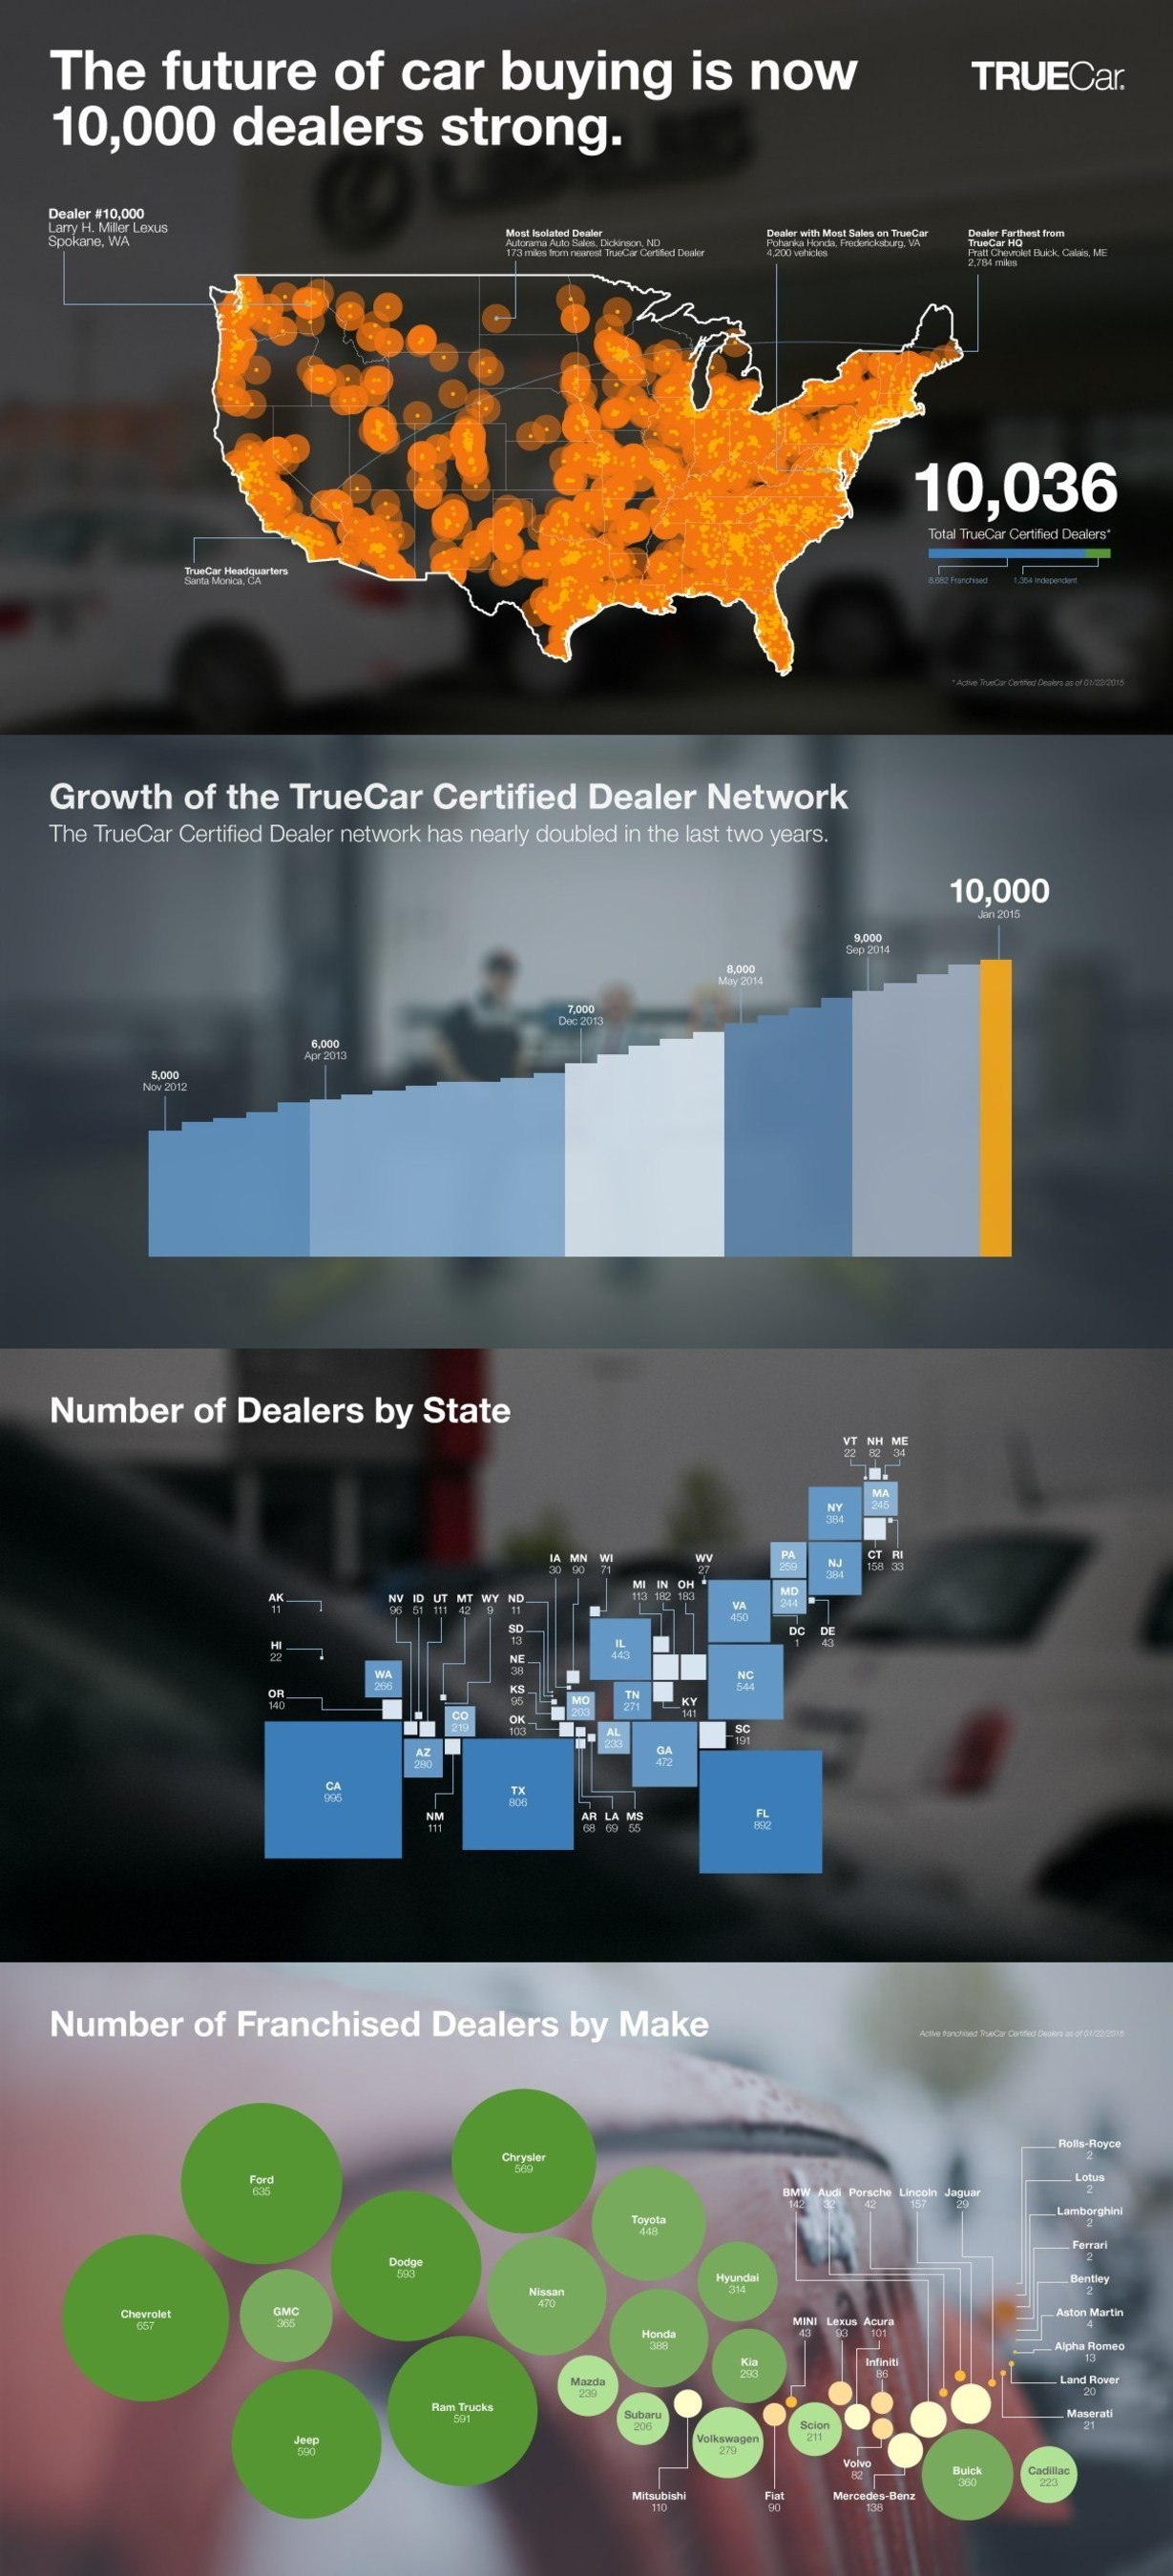 TrueCar dealer network count surpasses 10,000